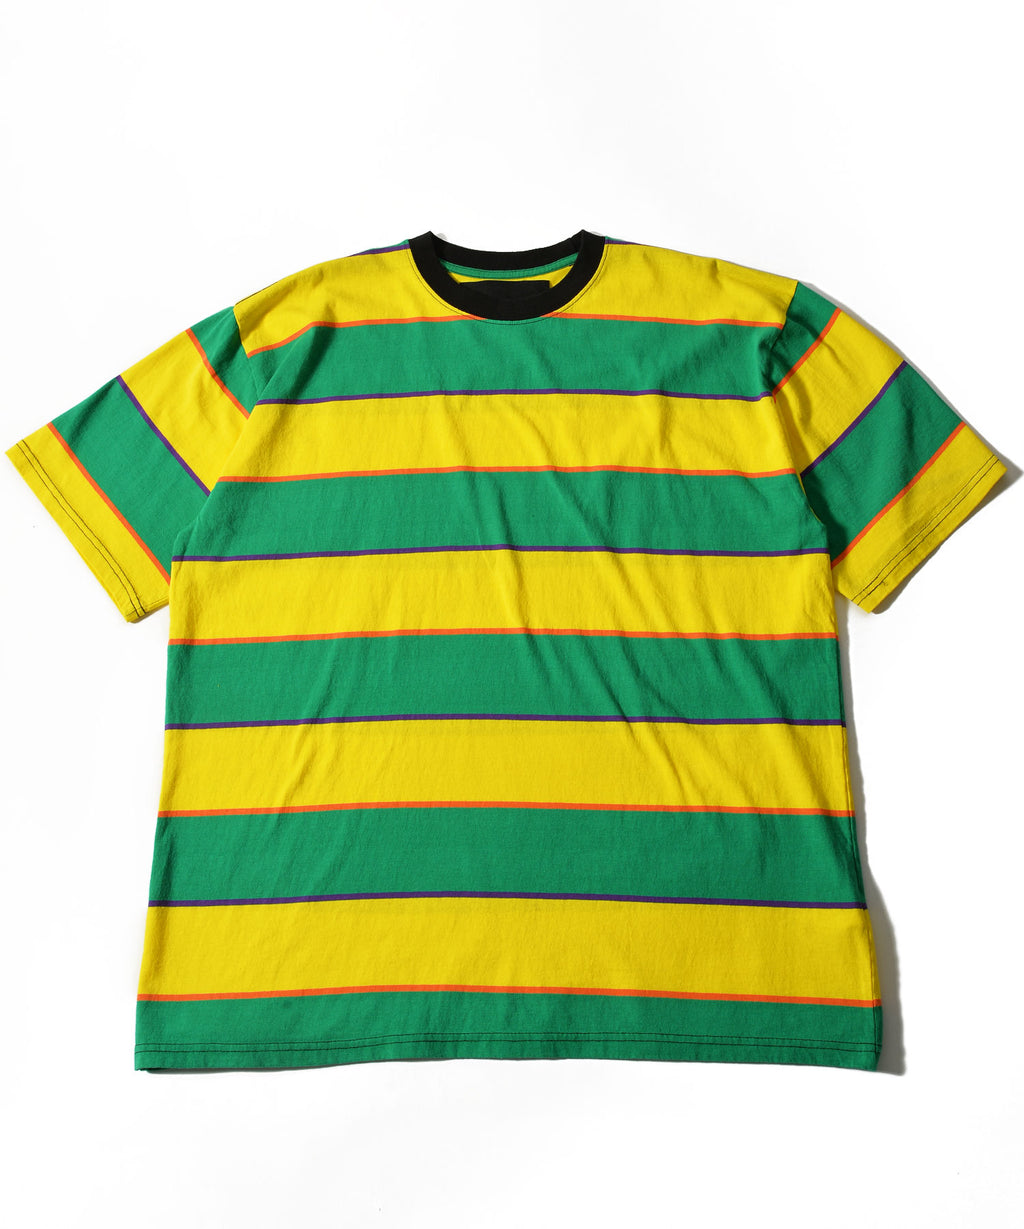 big-border short sleeve T-shirt